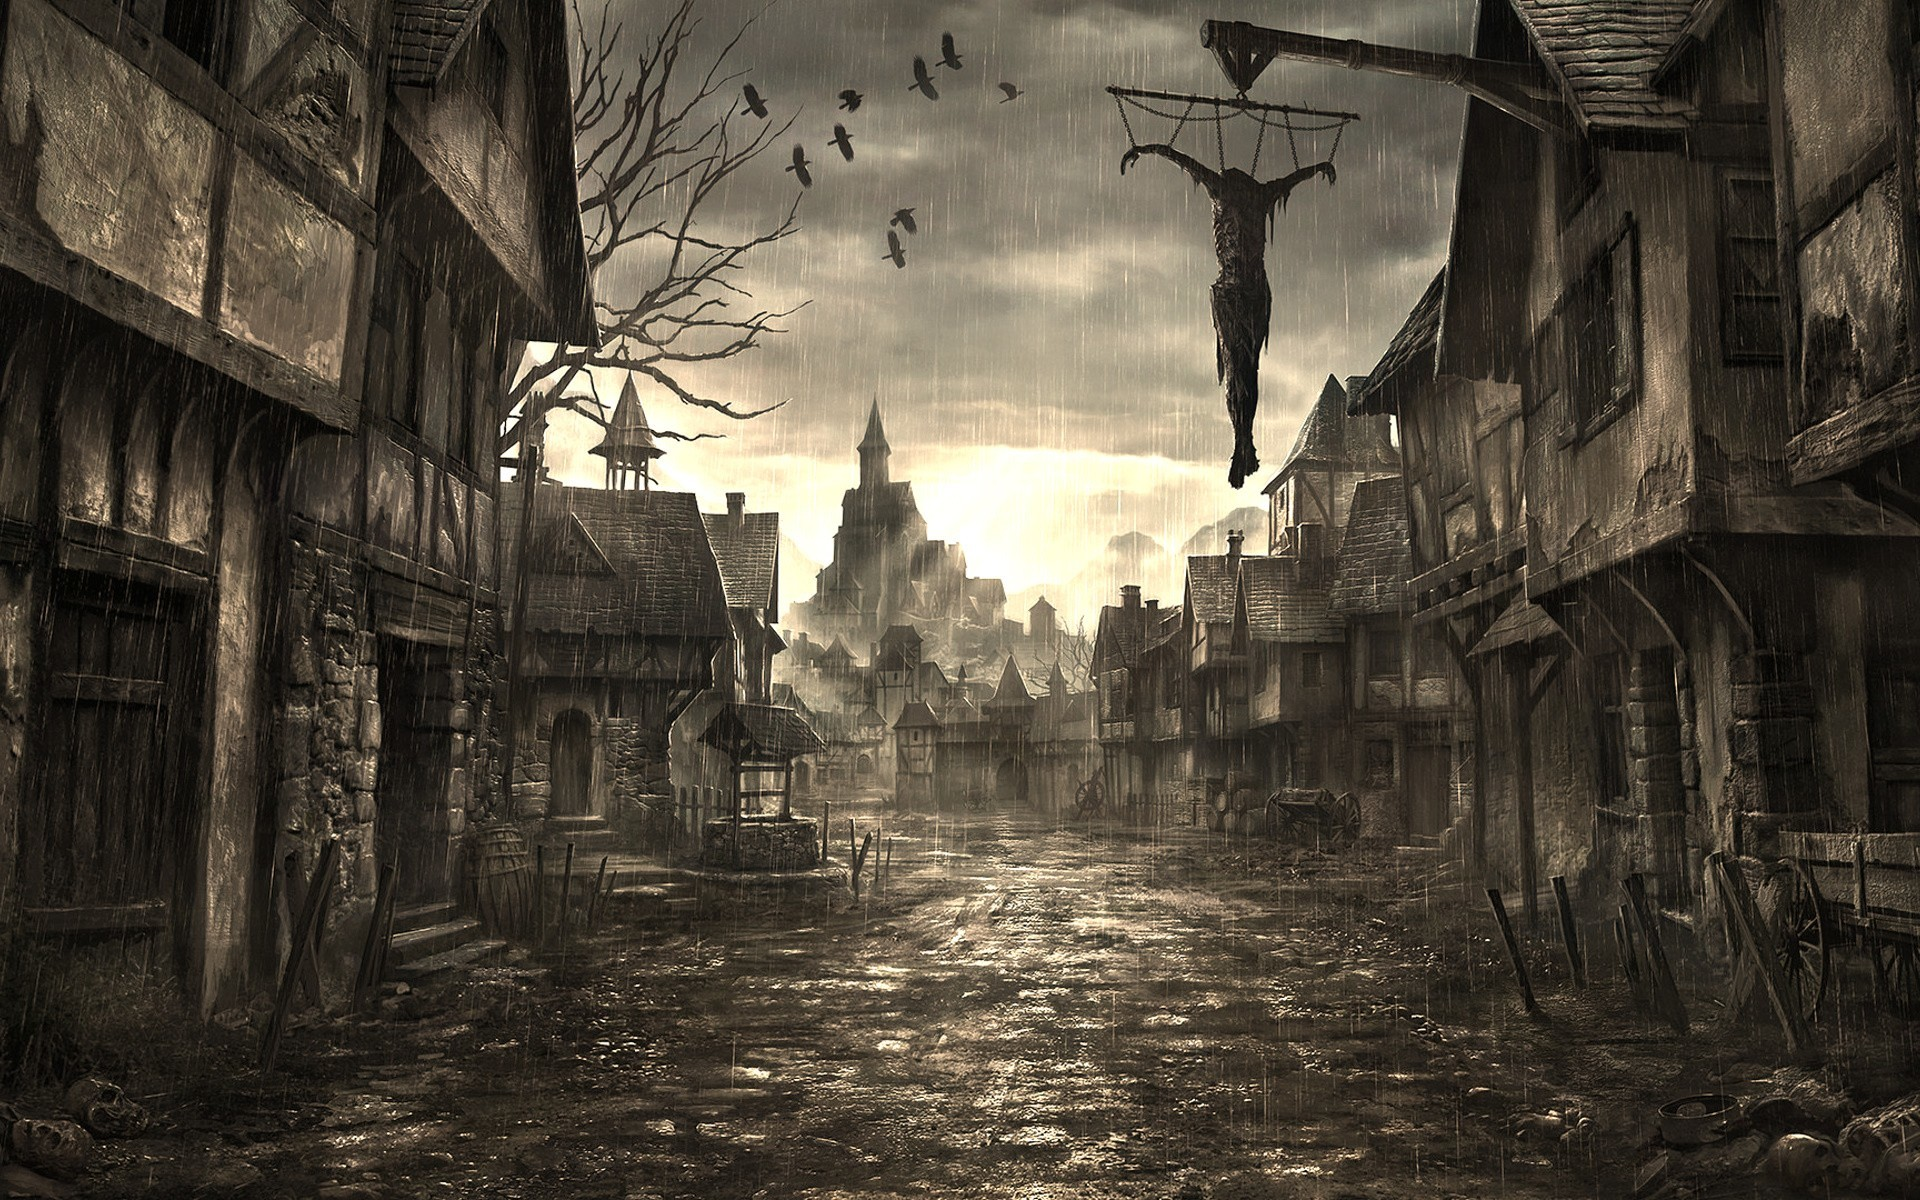 1920x1200 Creepy HD Wallpaper | Background Image |  | ID:387243 - Wallpaper  Abyss